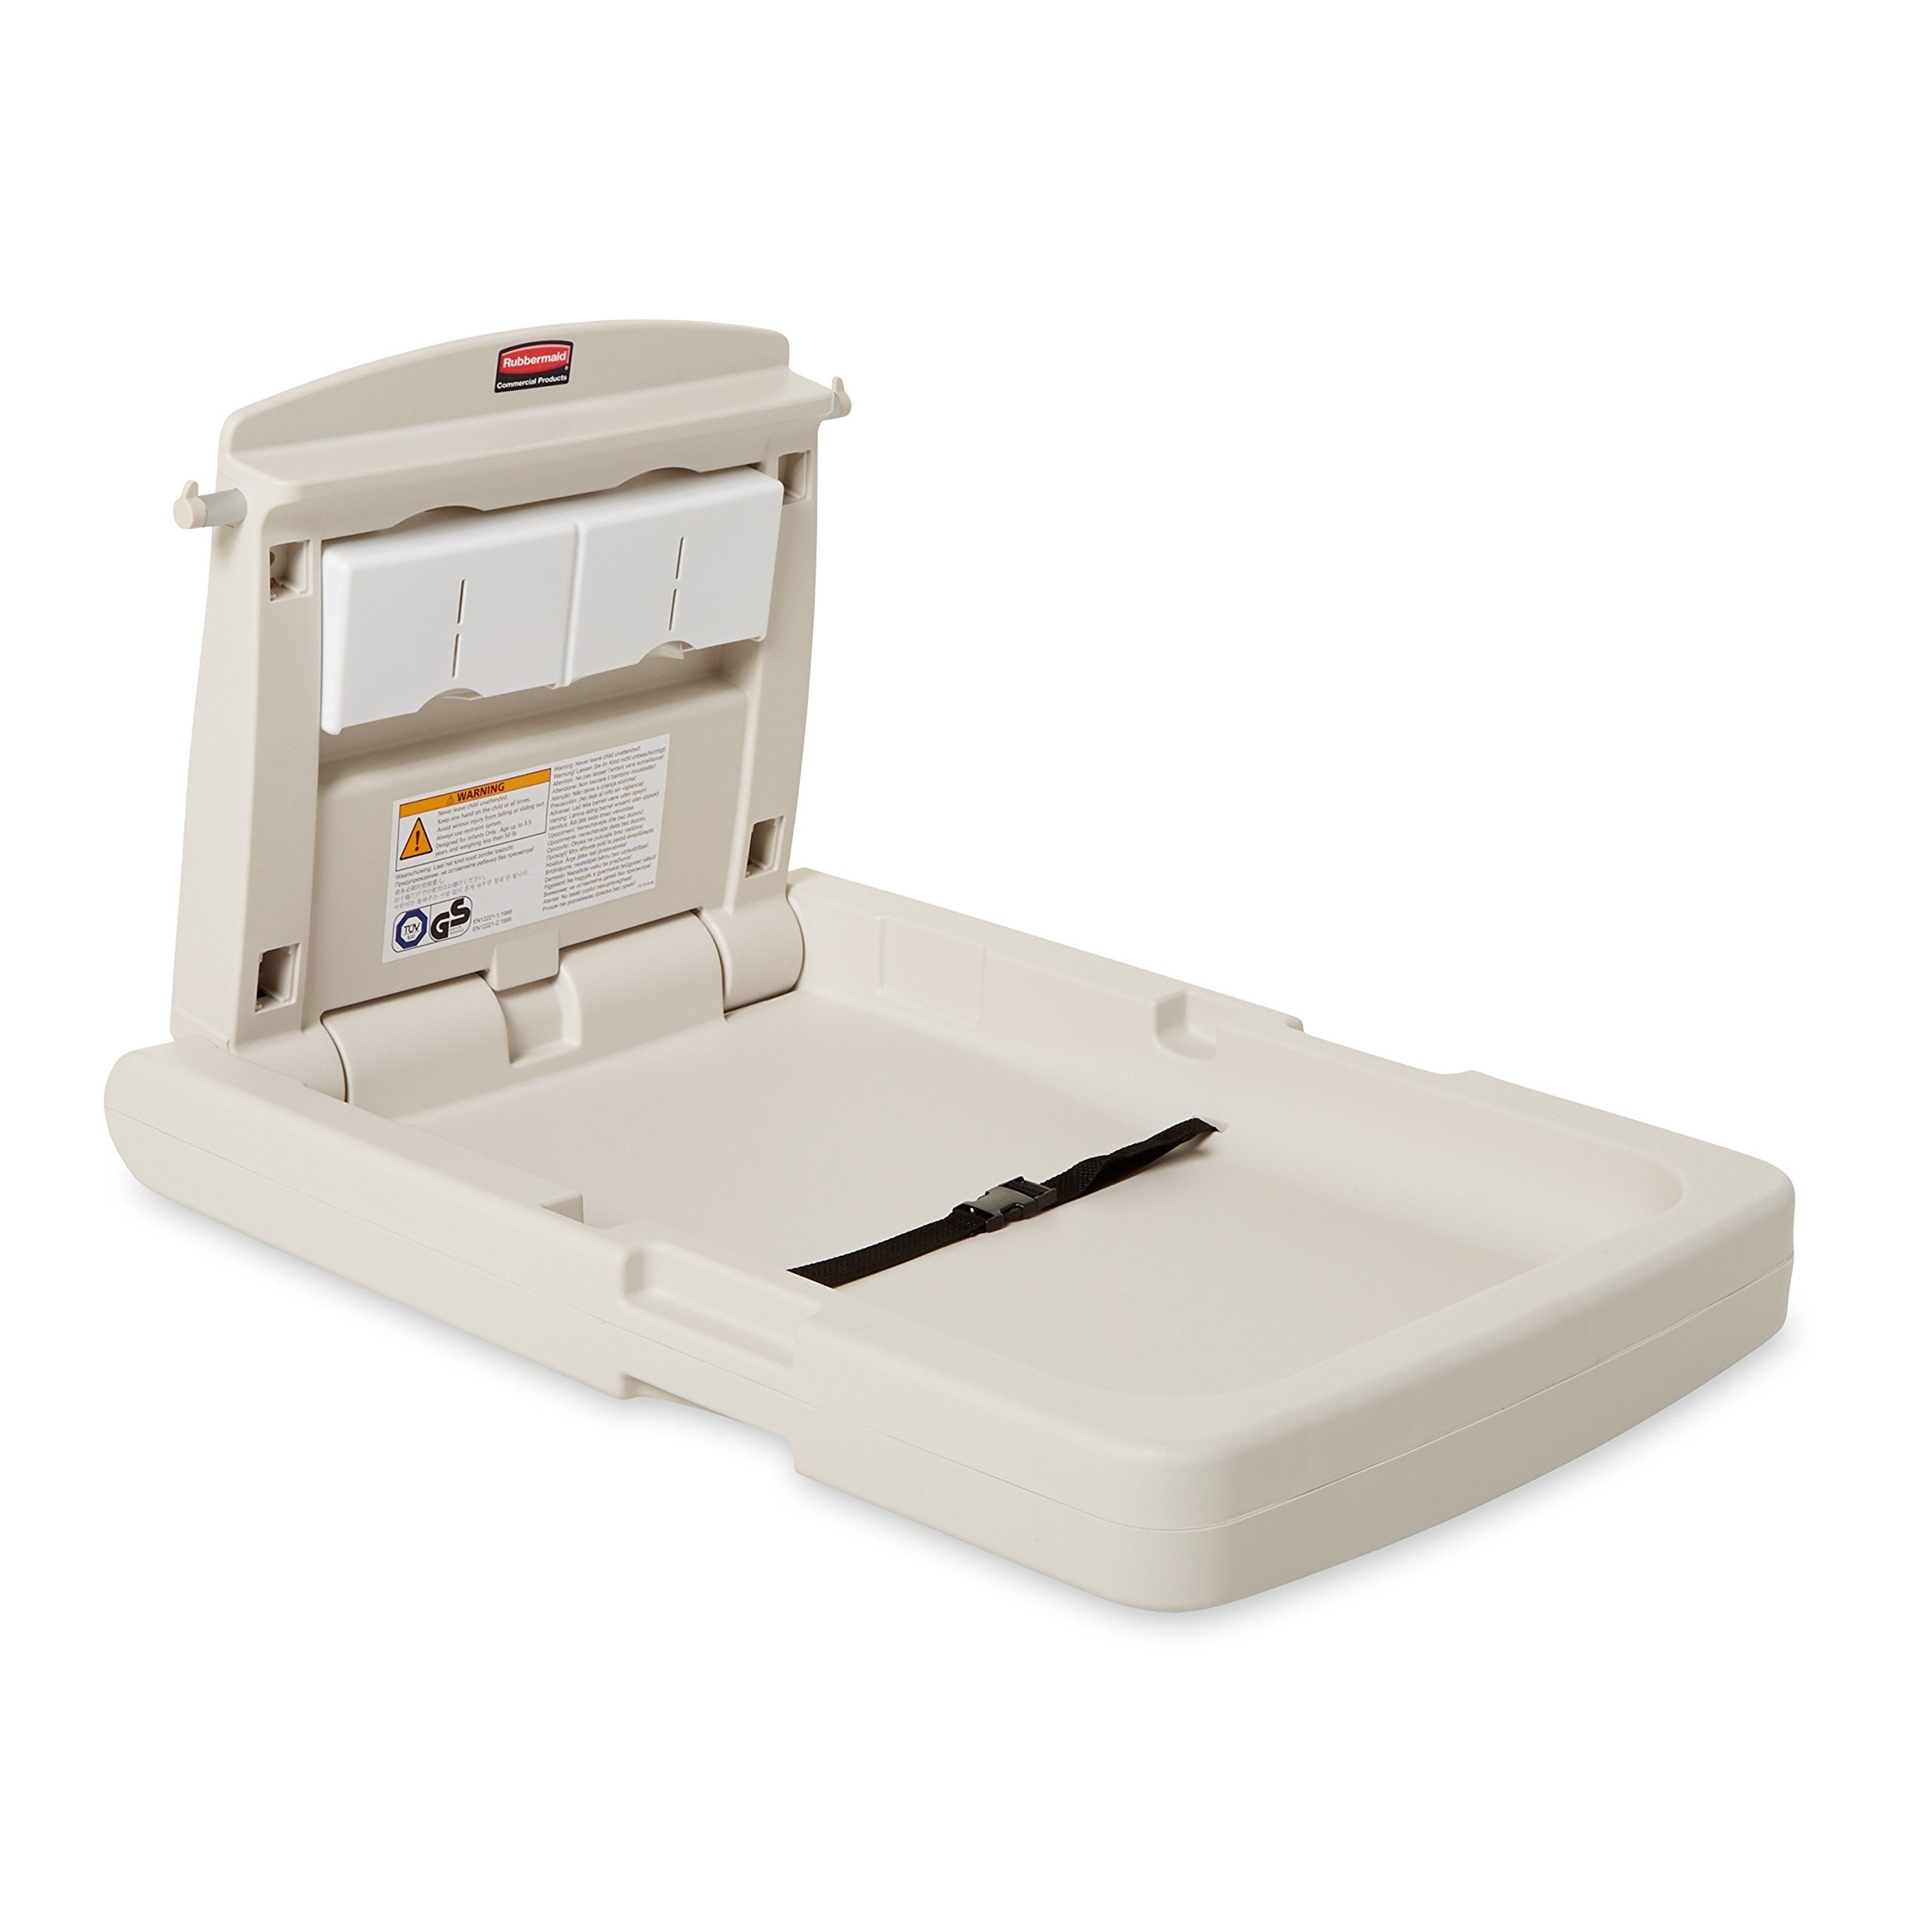 Rubbermaid Commercial Vertical Baby Changing Station, 23'' L x 34'' W x 4'' H, Light Platinum (FG781988LPLAT) by Rubbermaid Commercial Products